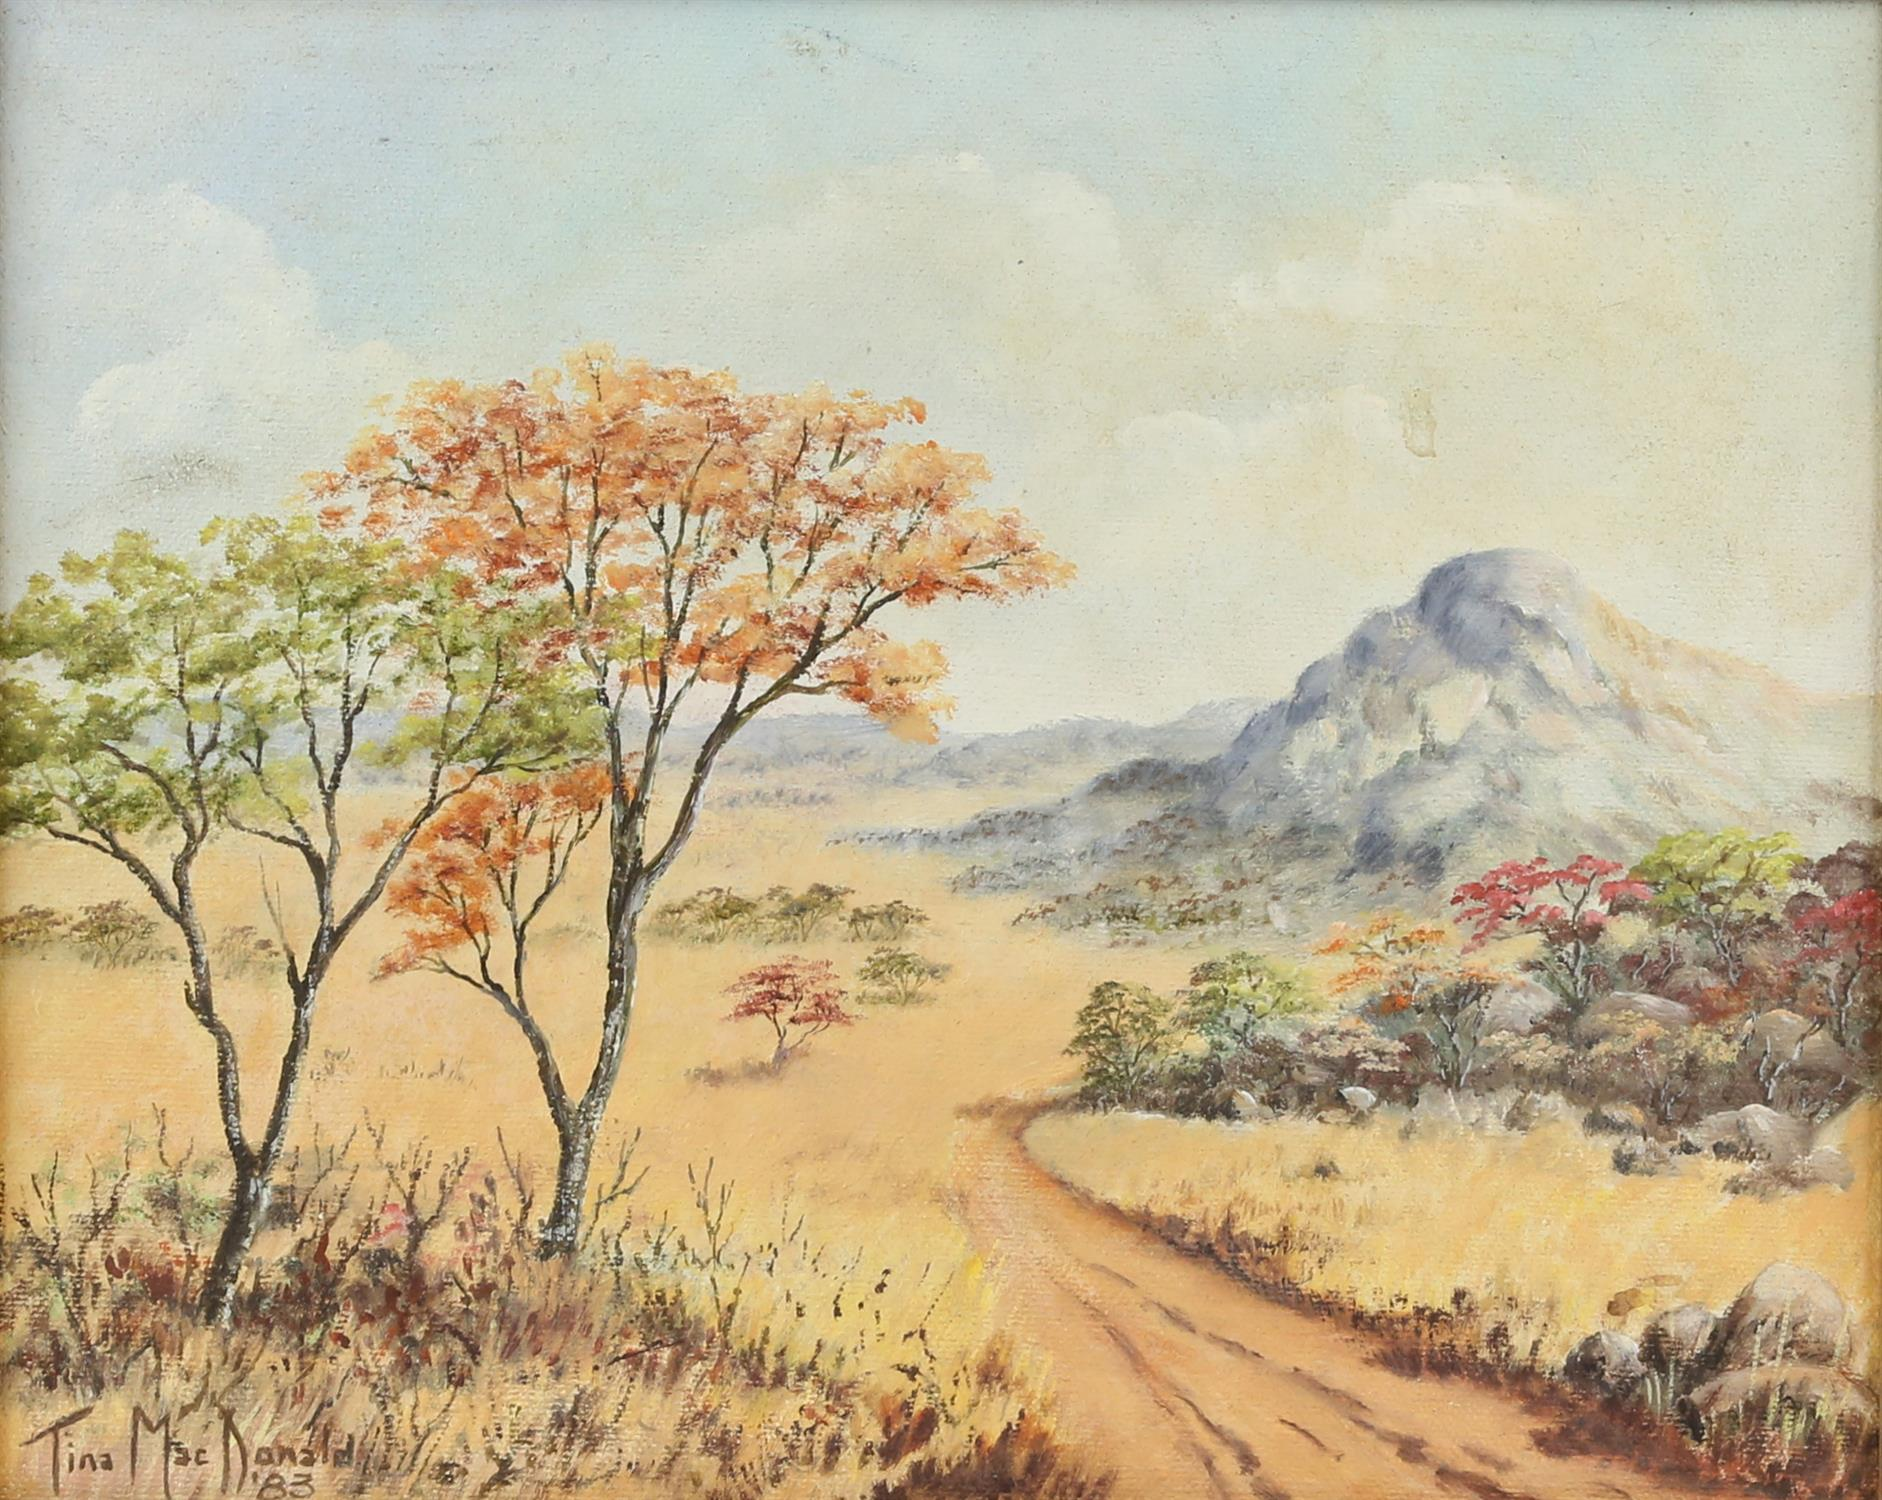 Tina MacDonald, Australian 20th century, landscape with hills and trees, signed and dated '83,